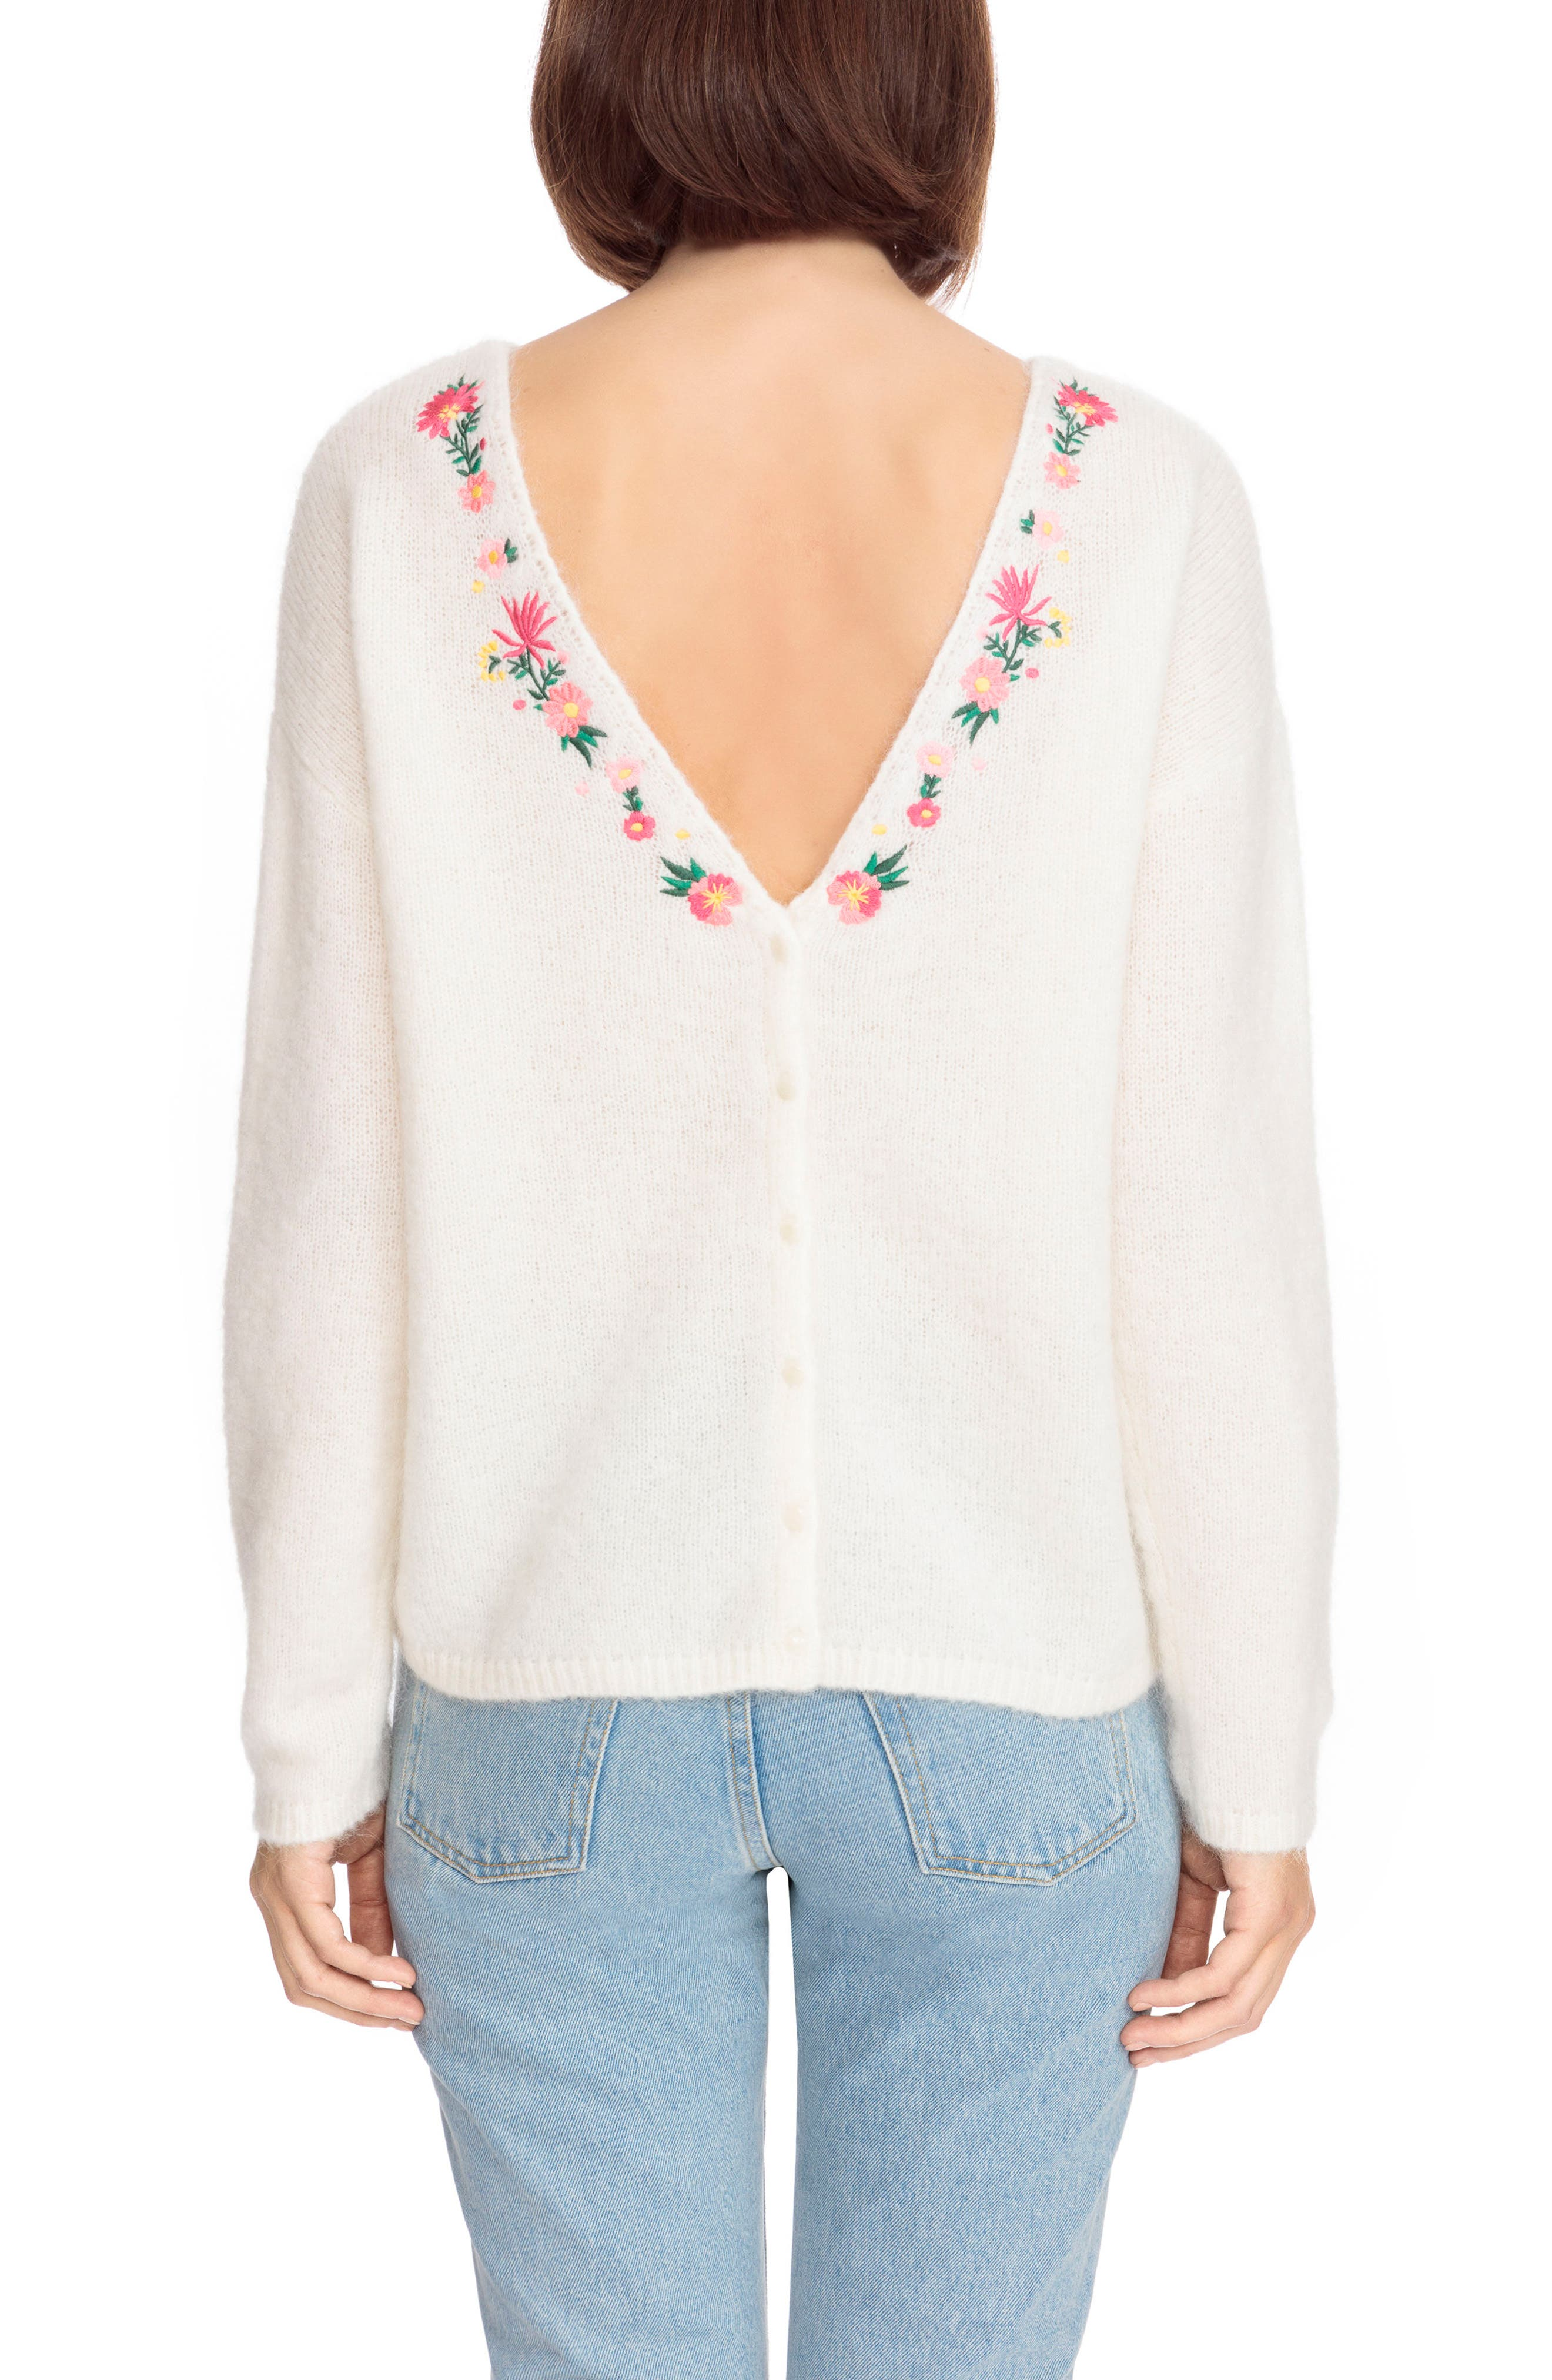 Cassiopee Embroidered Sweater,                             Alternate thumbnail 3, color,                             Off White